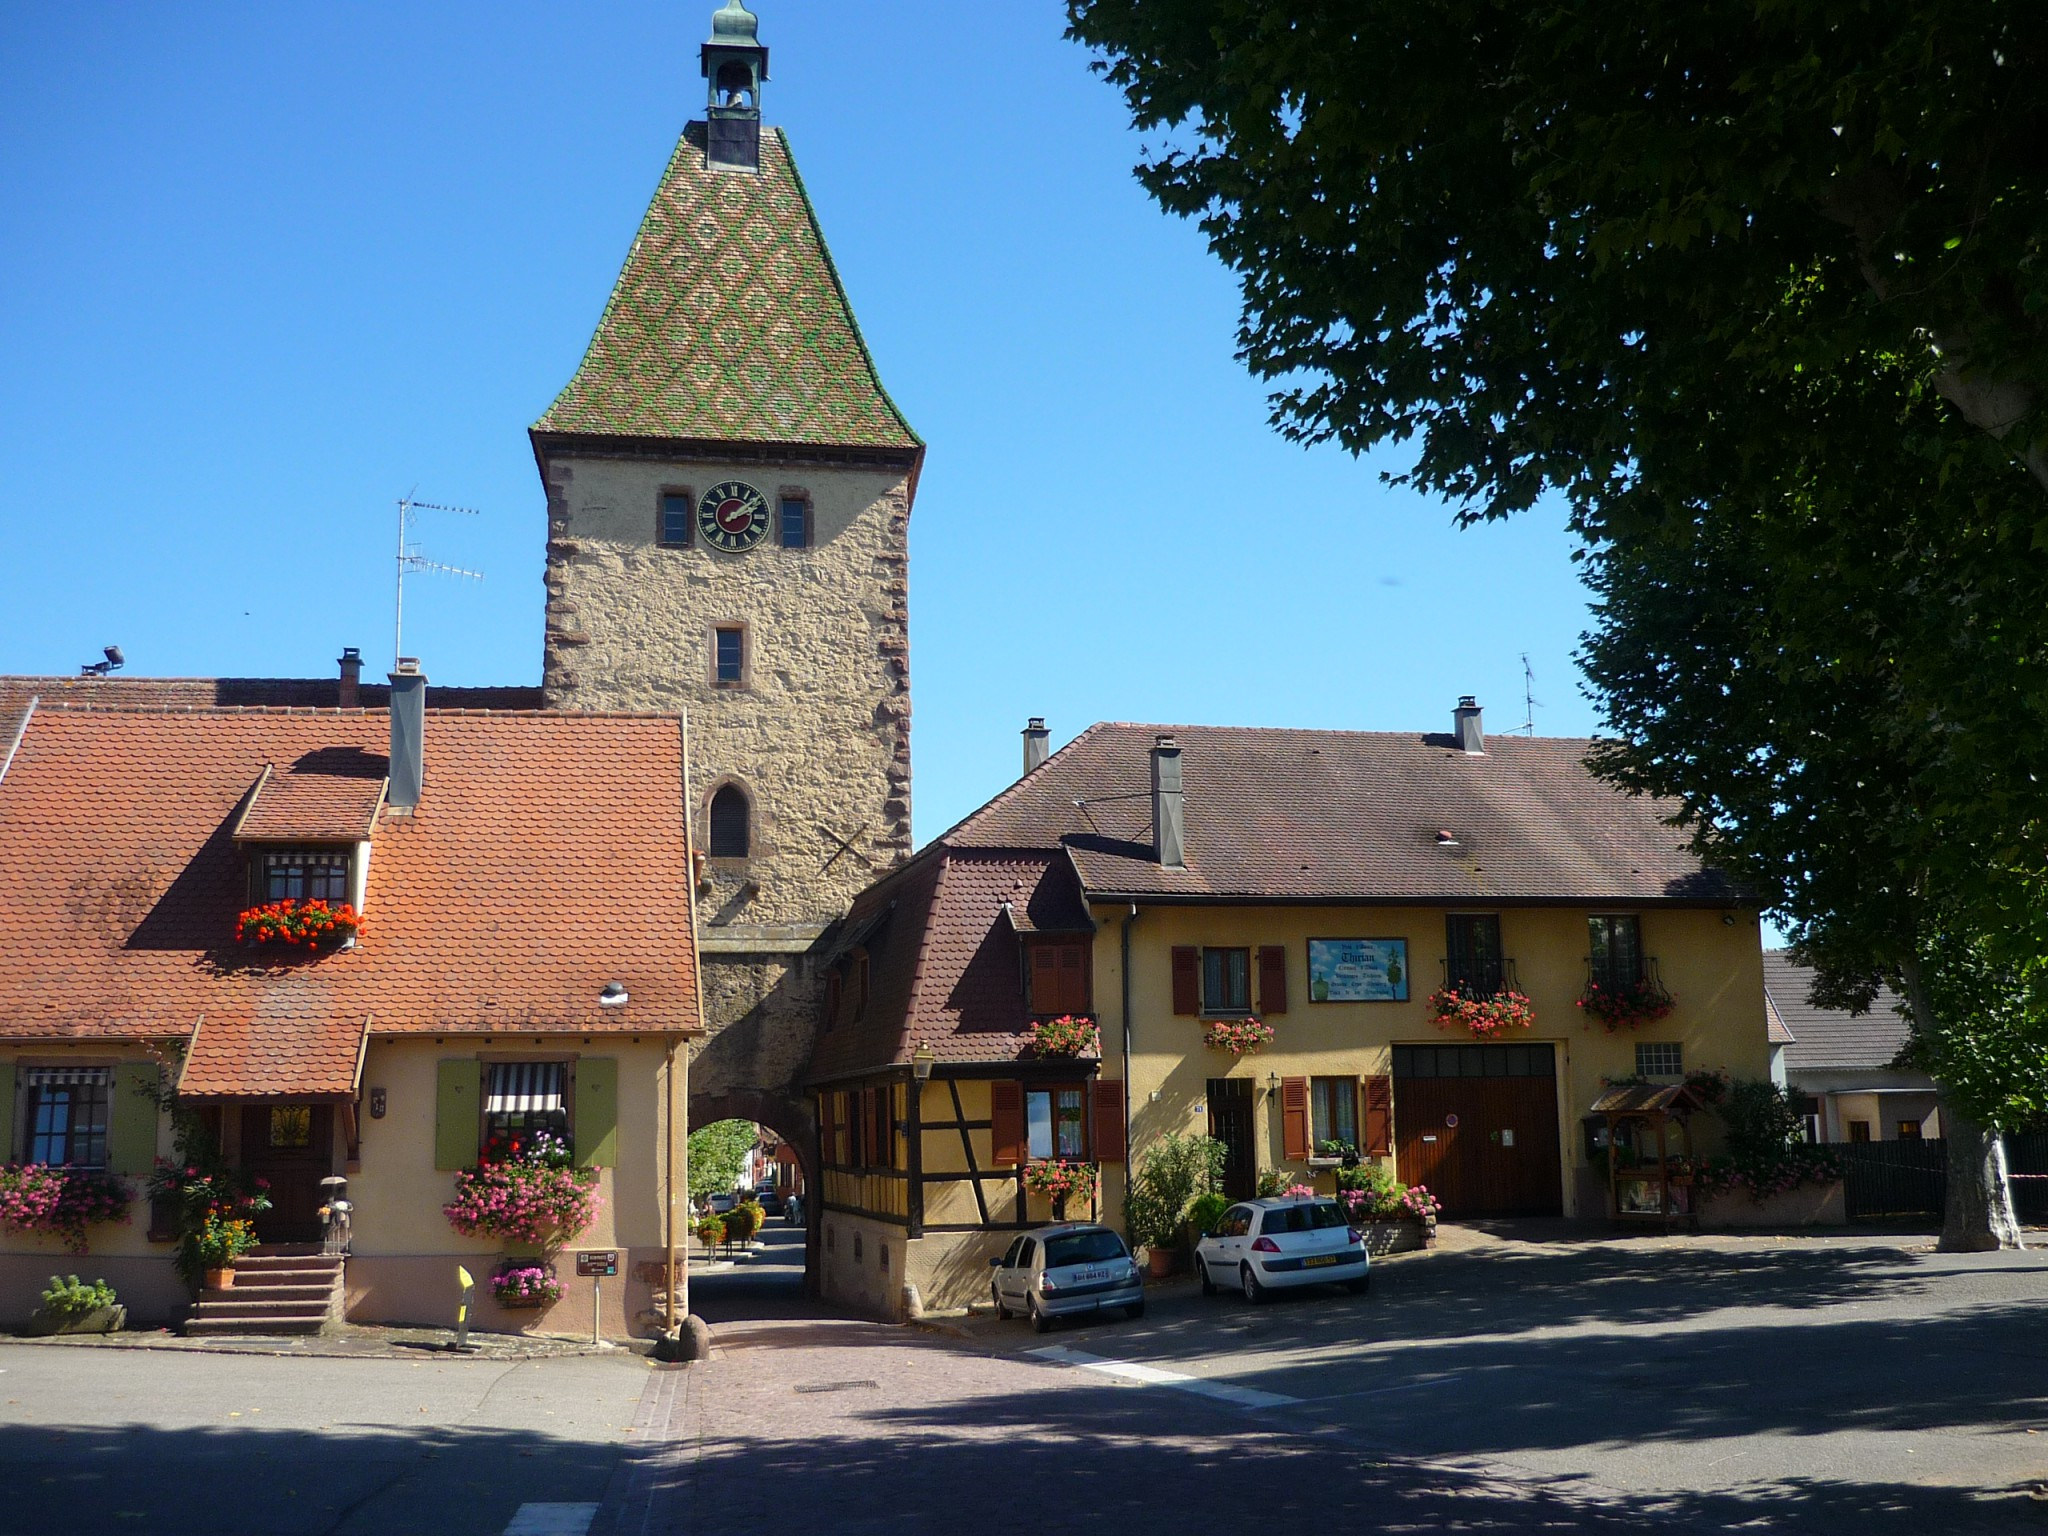 The Obertor (Porte Haute) in Bergheim © French Moments